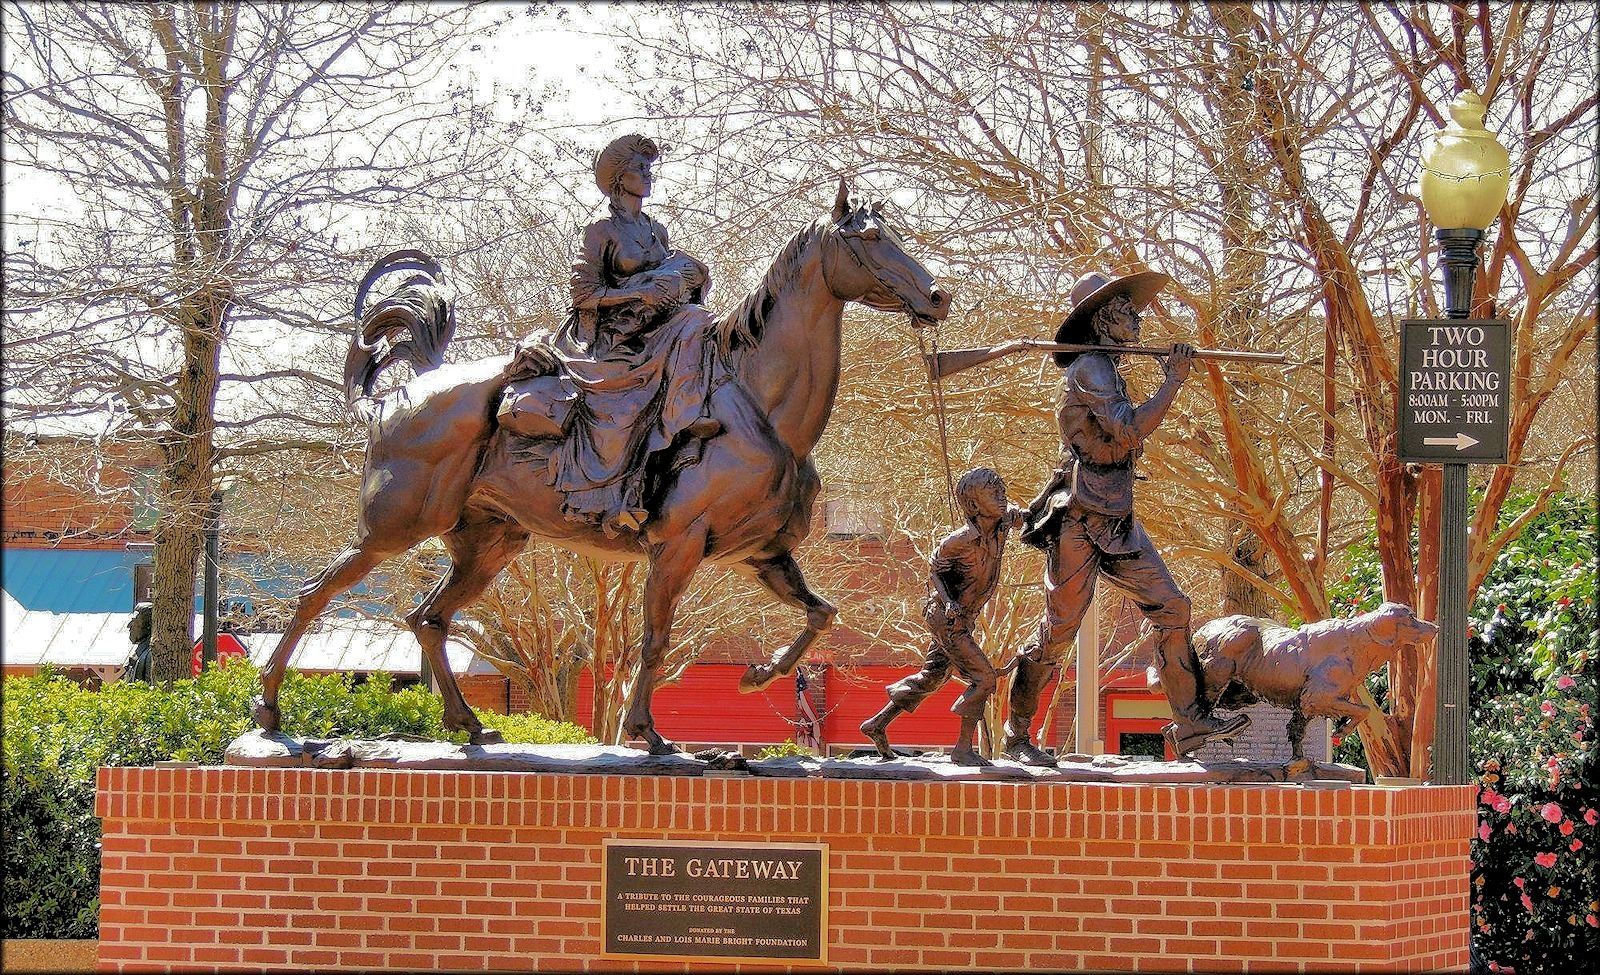 The Gateway Statue: A Pioneer Family Travelling West on the El Camino Real in Historic Nacogdoches